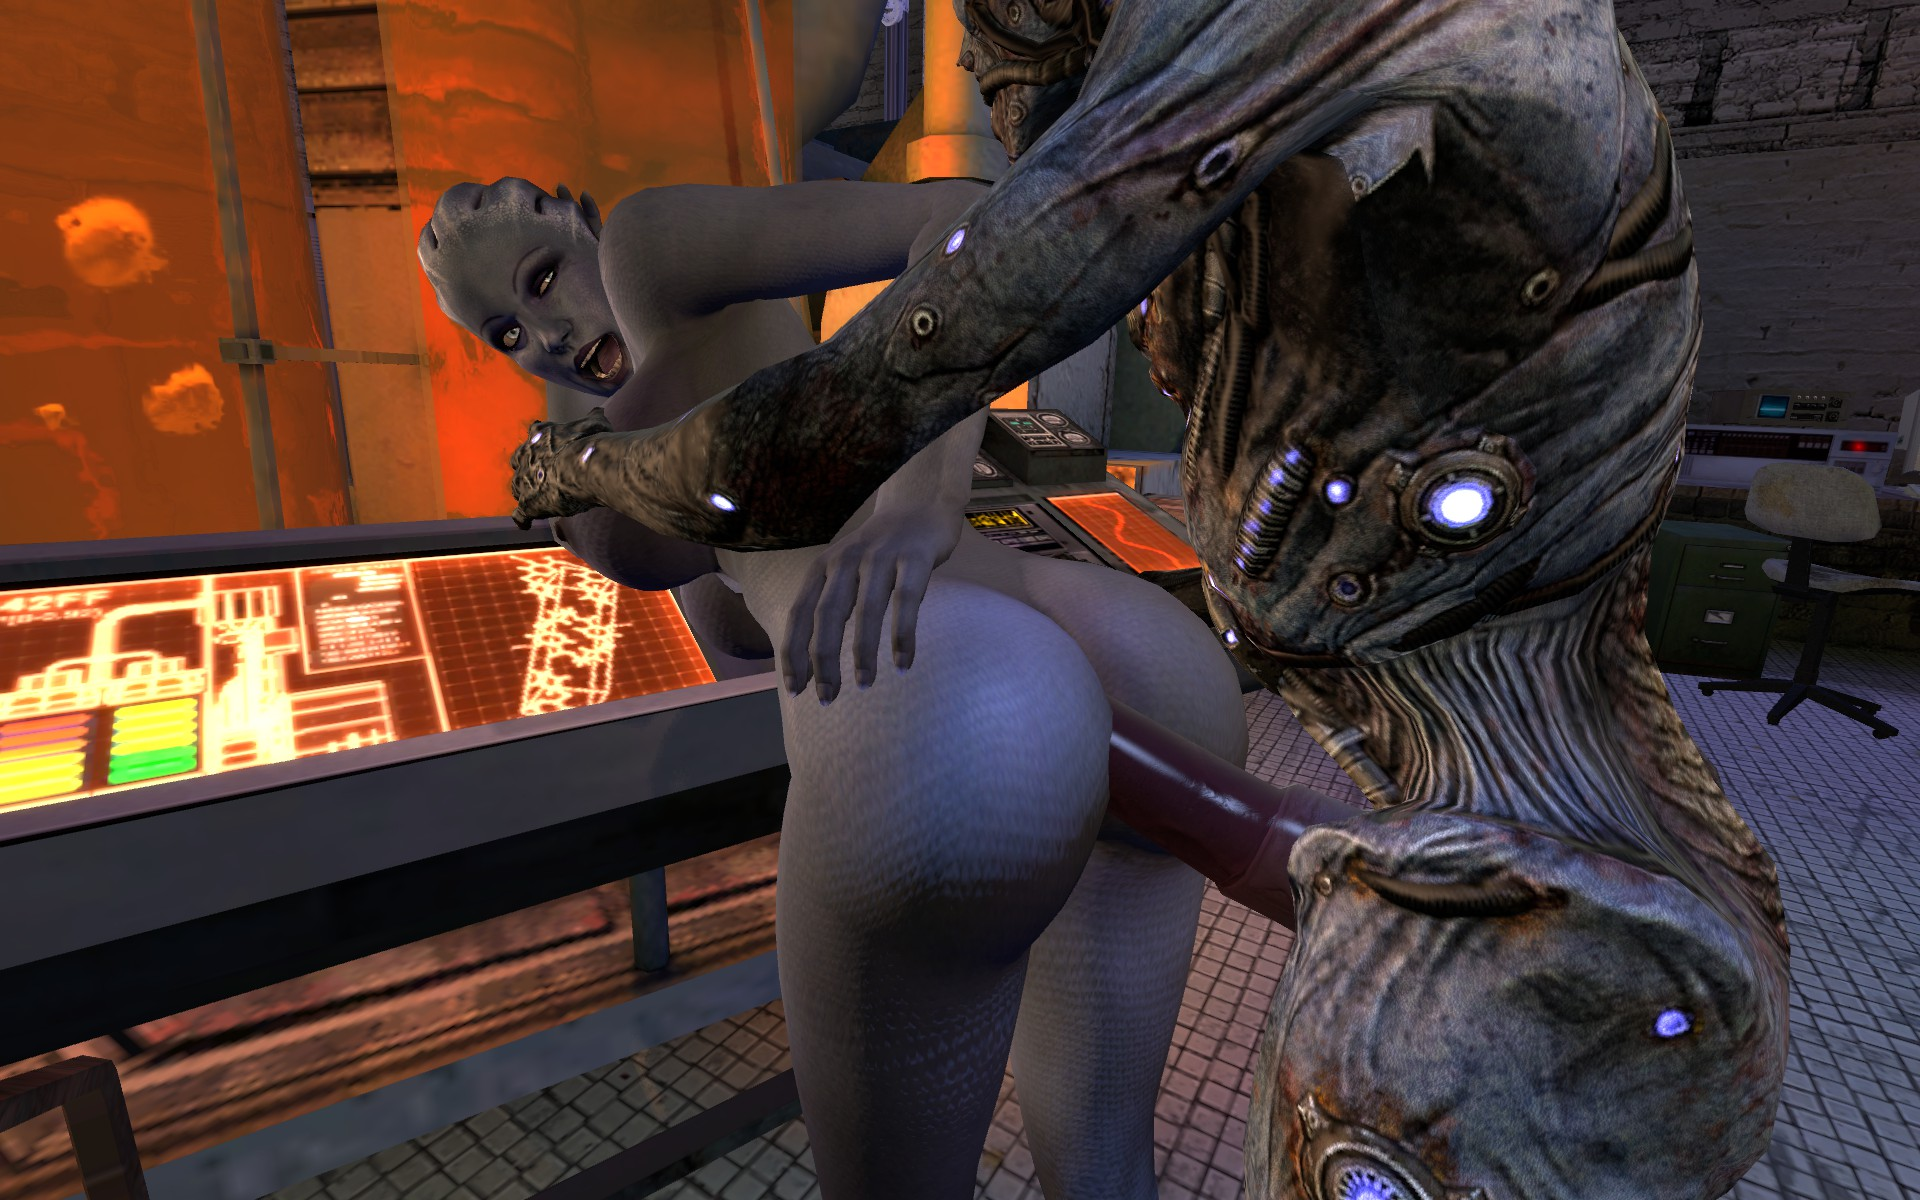 Mass effect sex villa mod naked naughty girlfriends